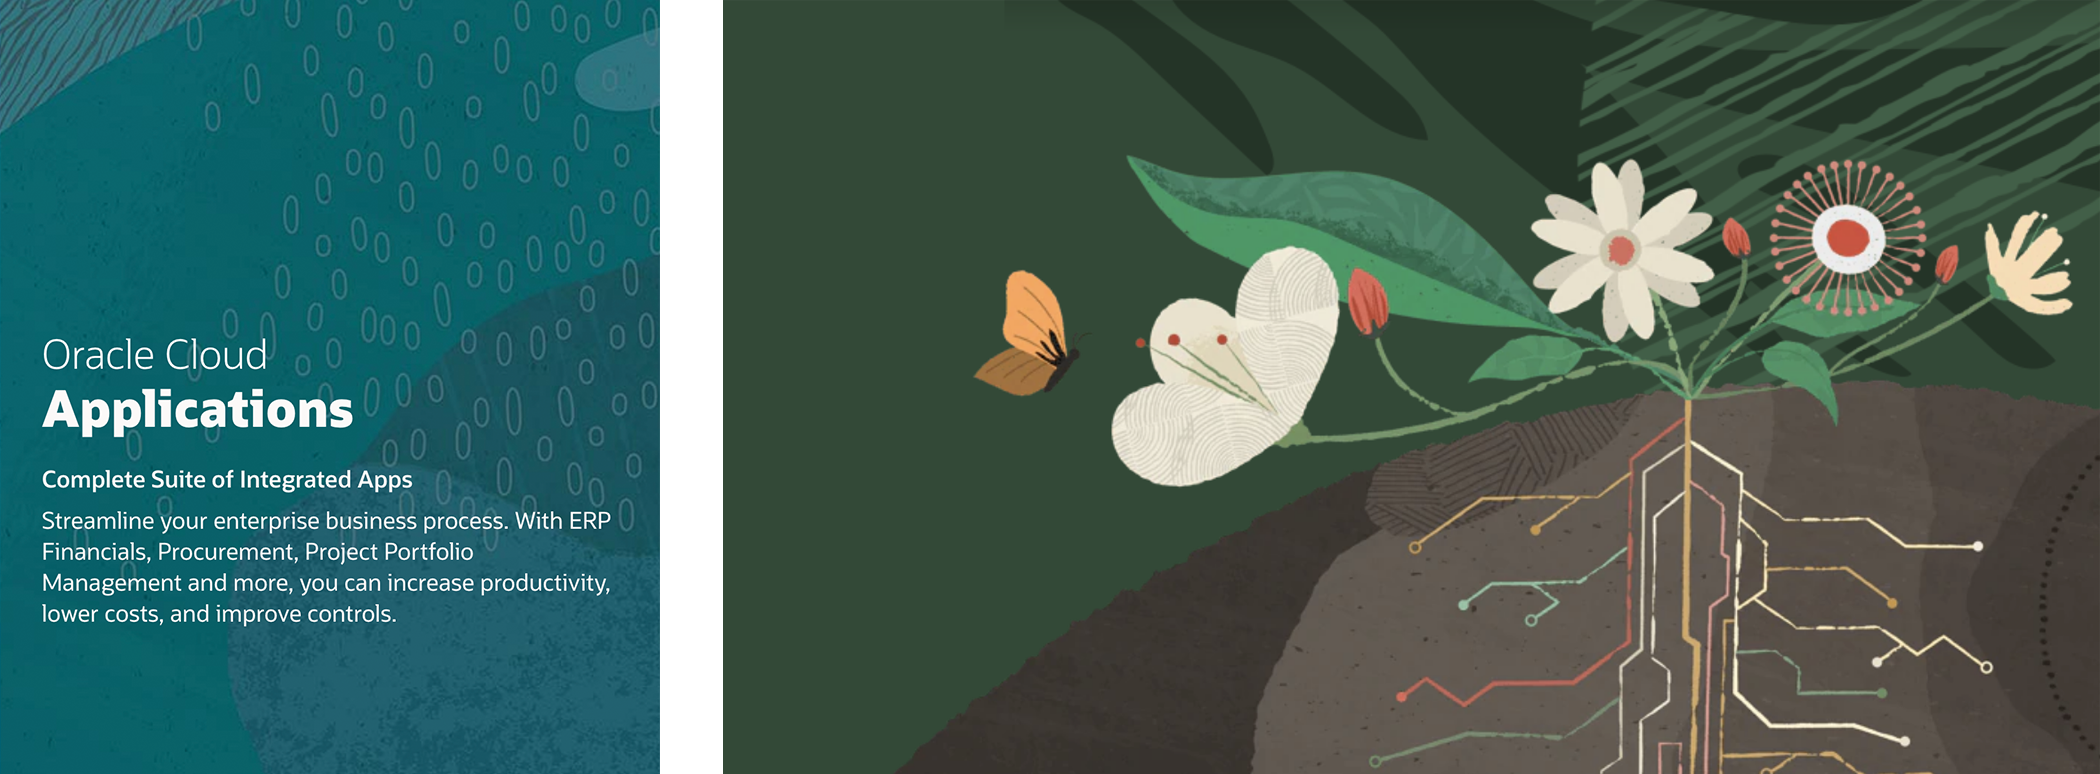 Illustrations of nature patterns and flowers